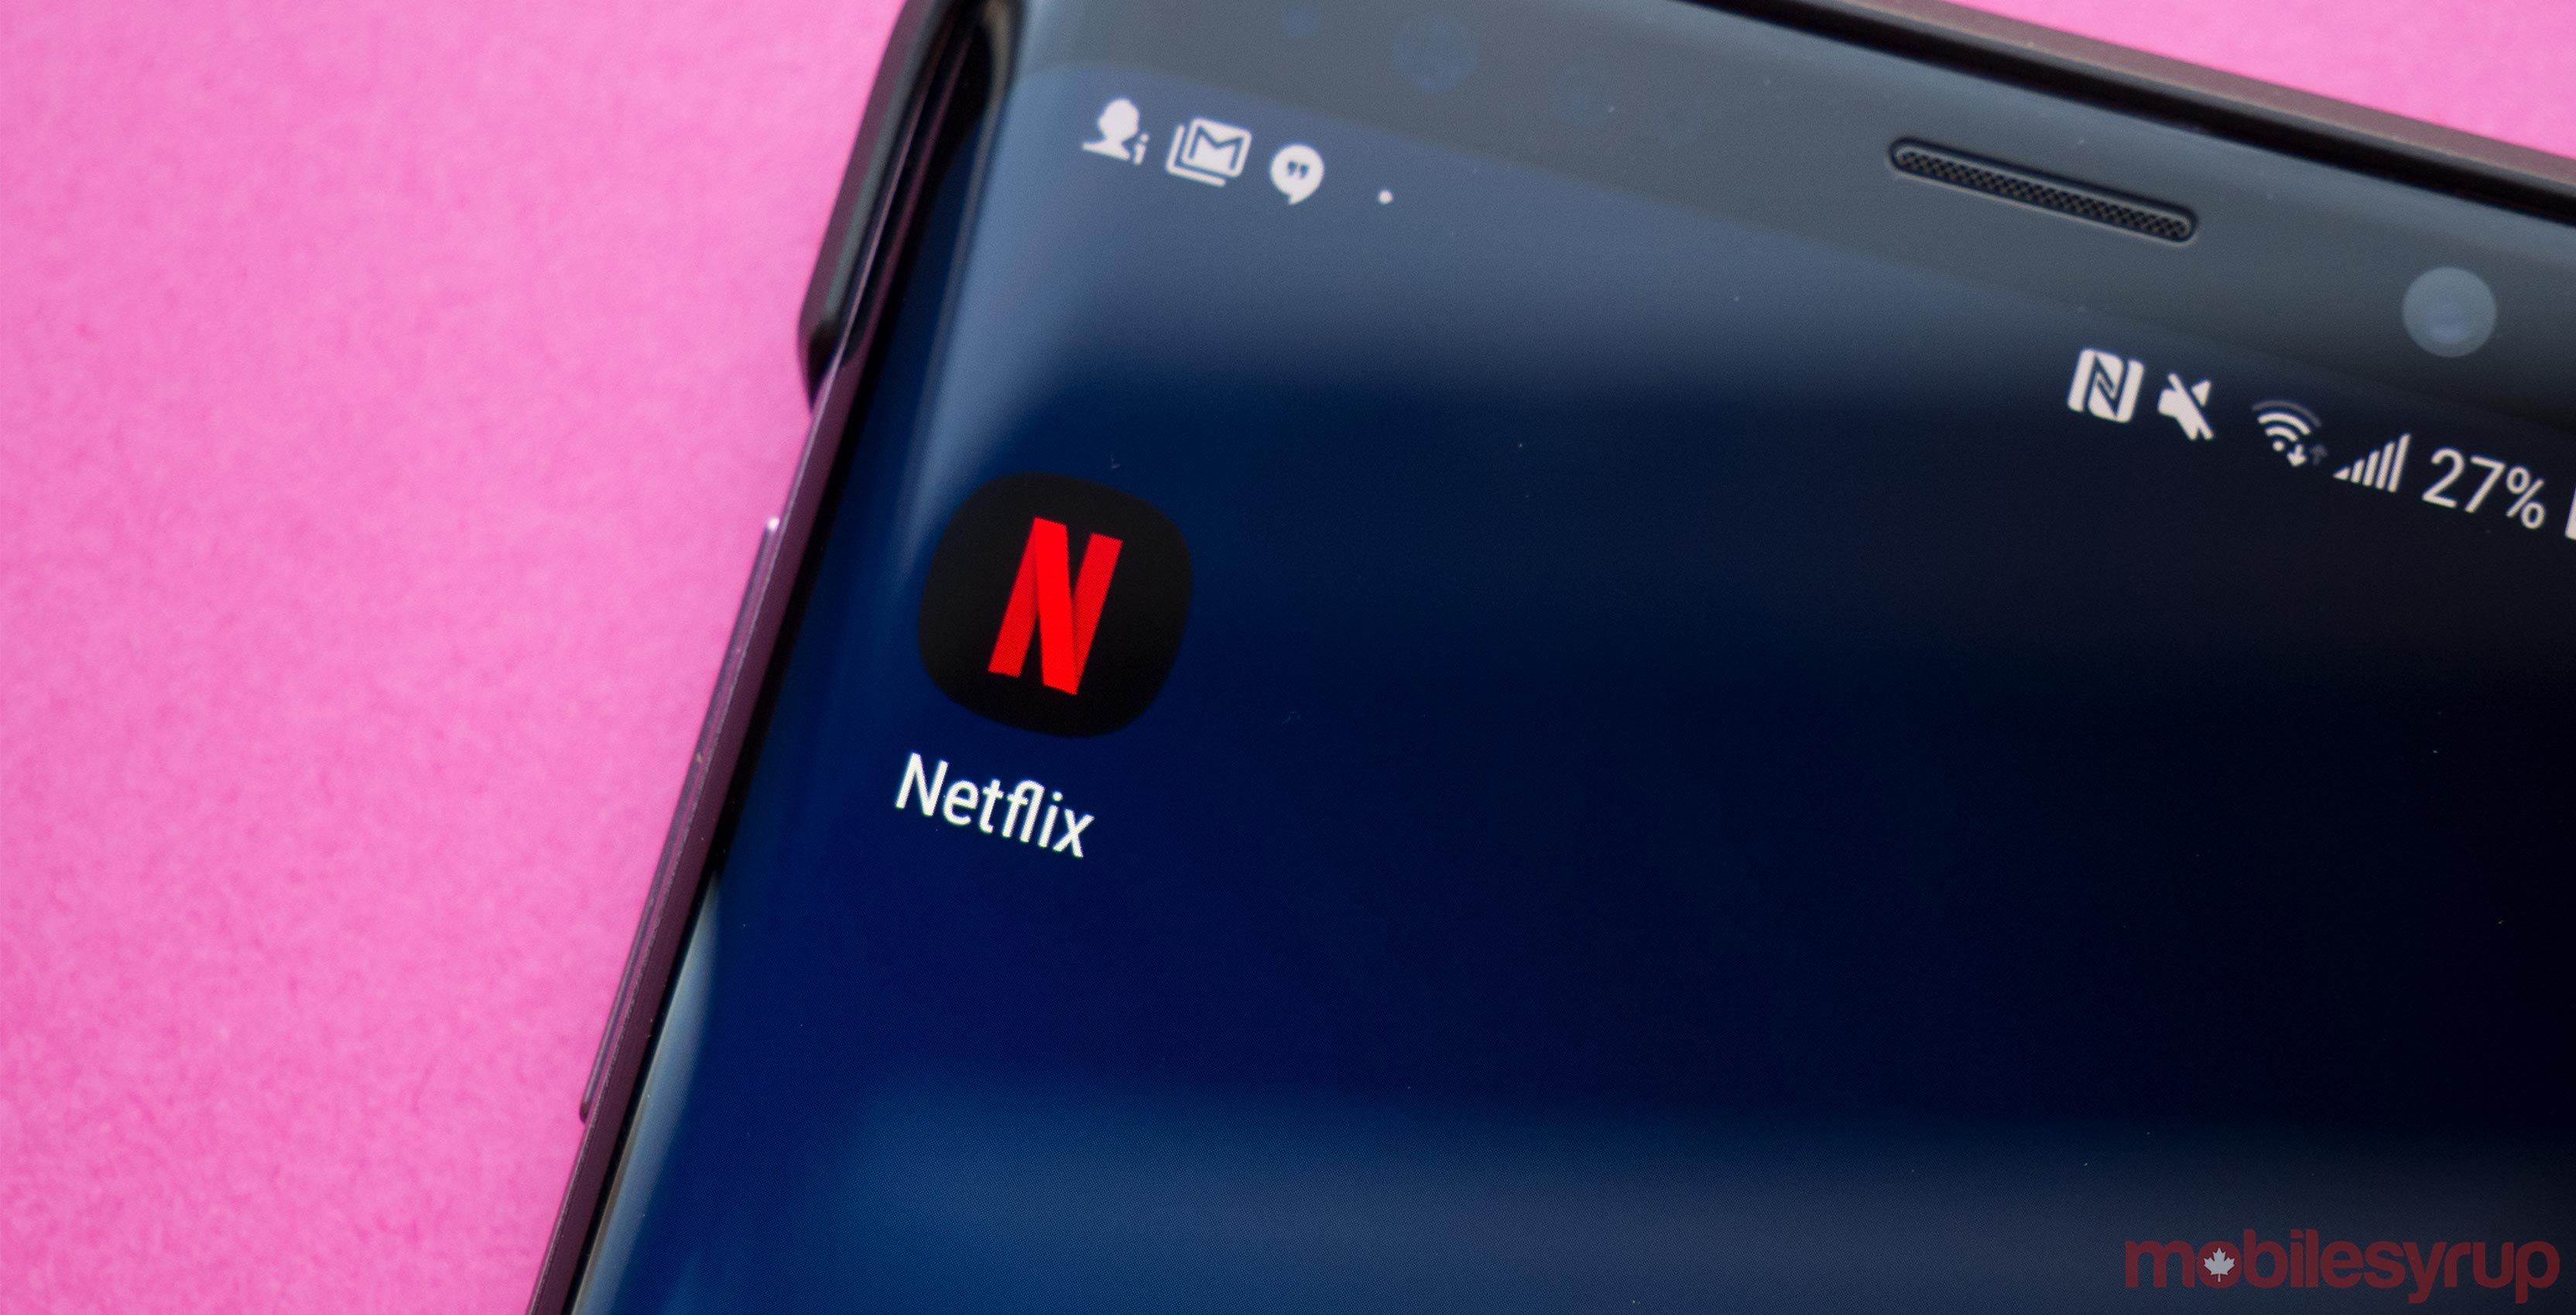 How To Make Streaming Of The Content From Netflix Better